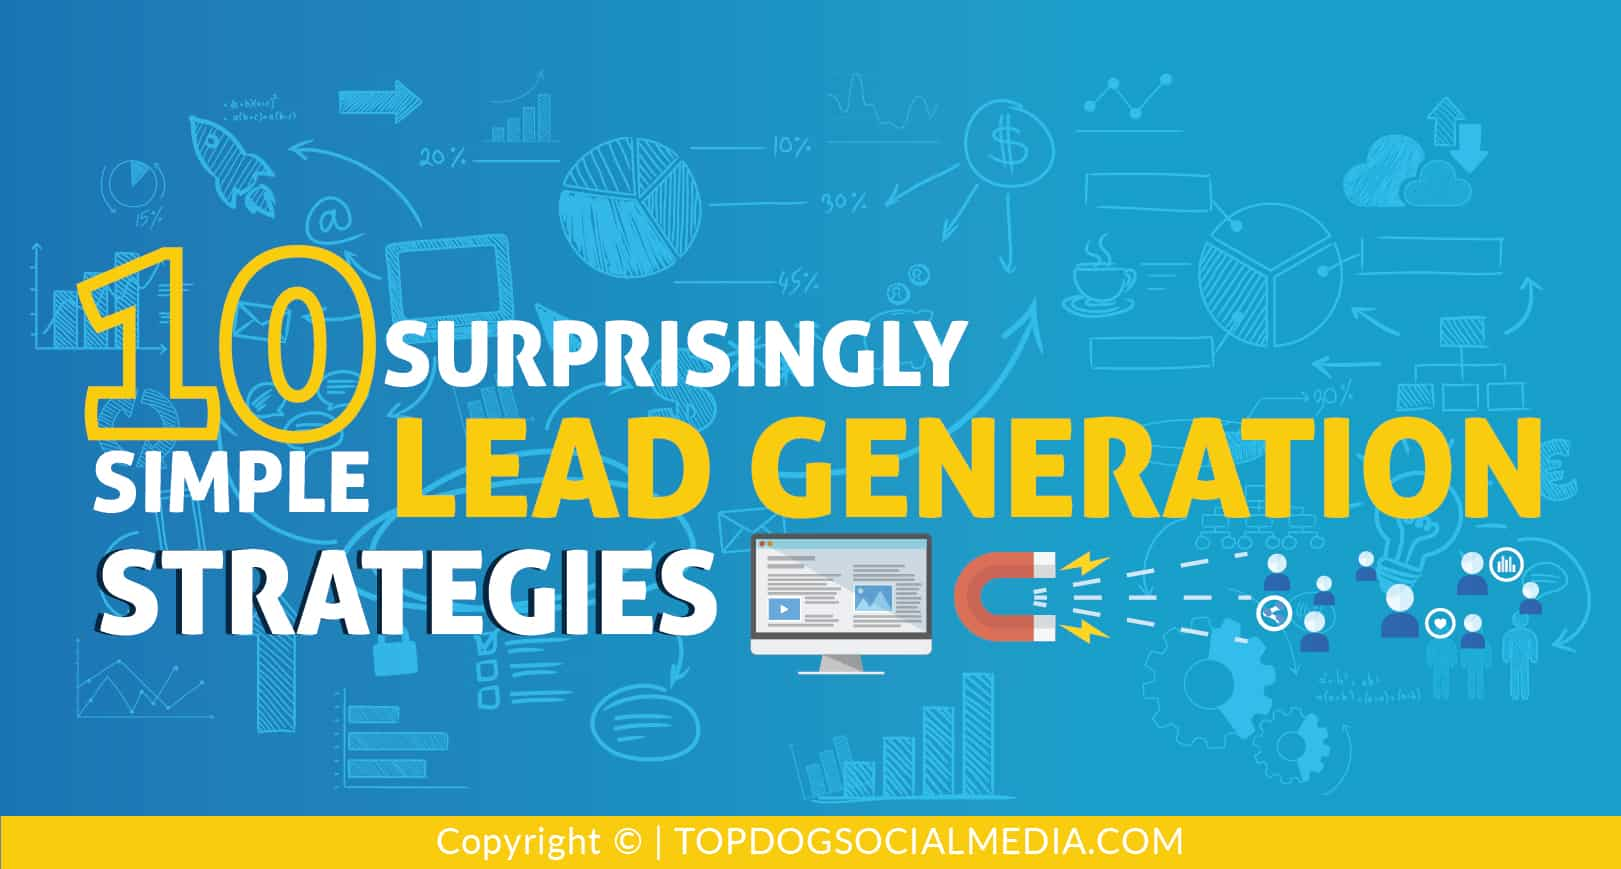 10 Surprisingly Simple Lead Generation Strategies